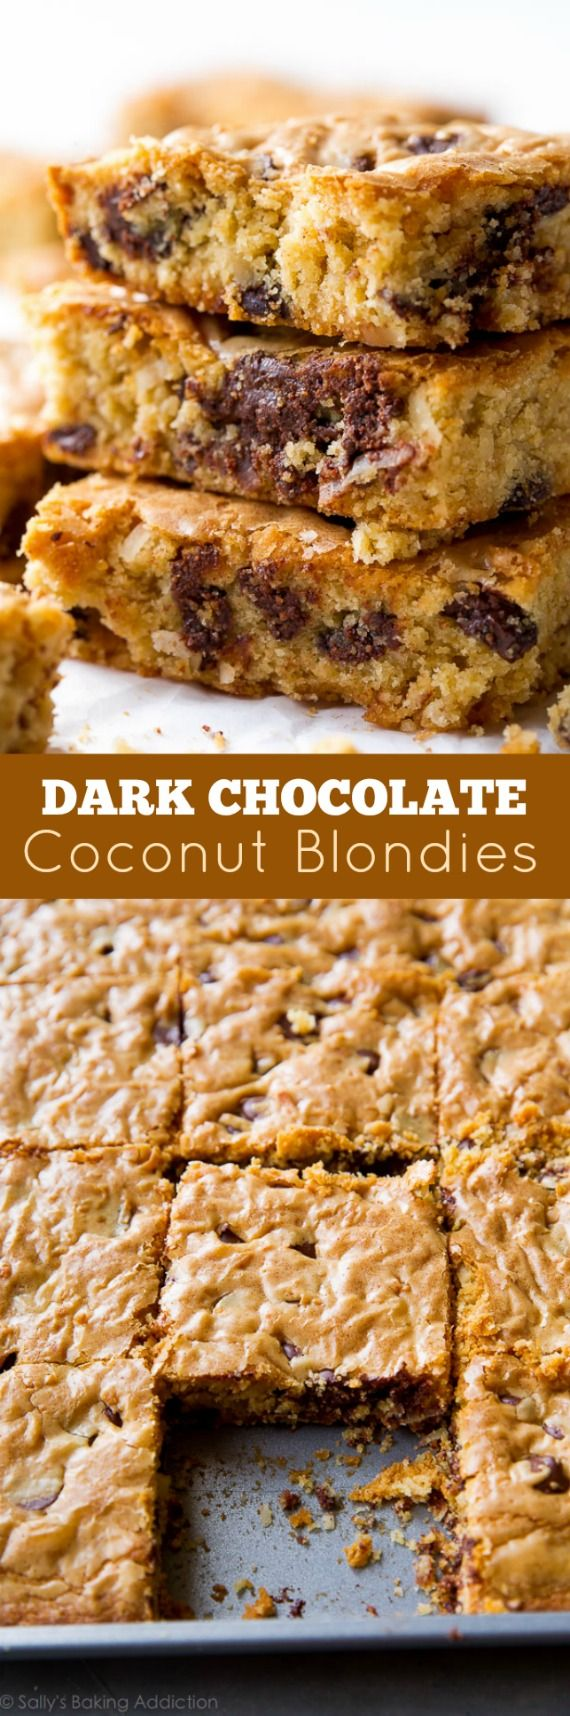 Just a few basic ingredients and no mixer! Super chewy and buttery dark chocolate coconut blondies recipe on sallysbakingaddiction.com